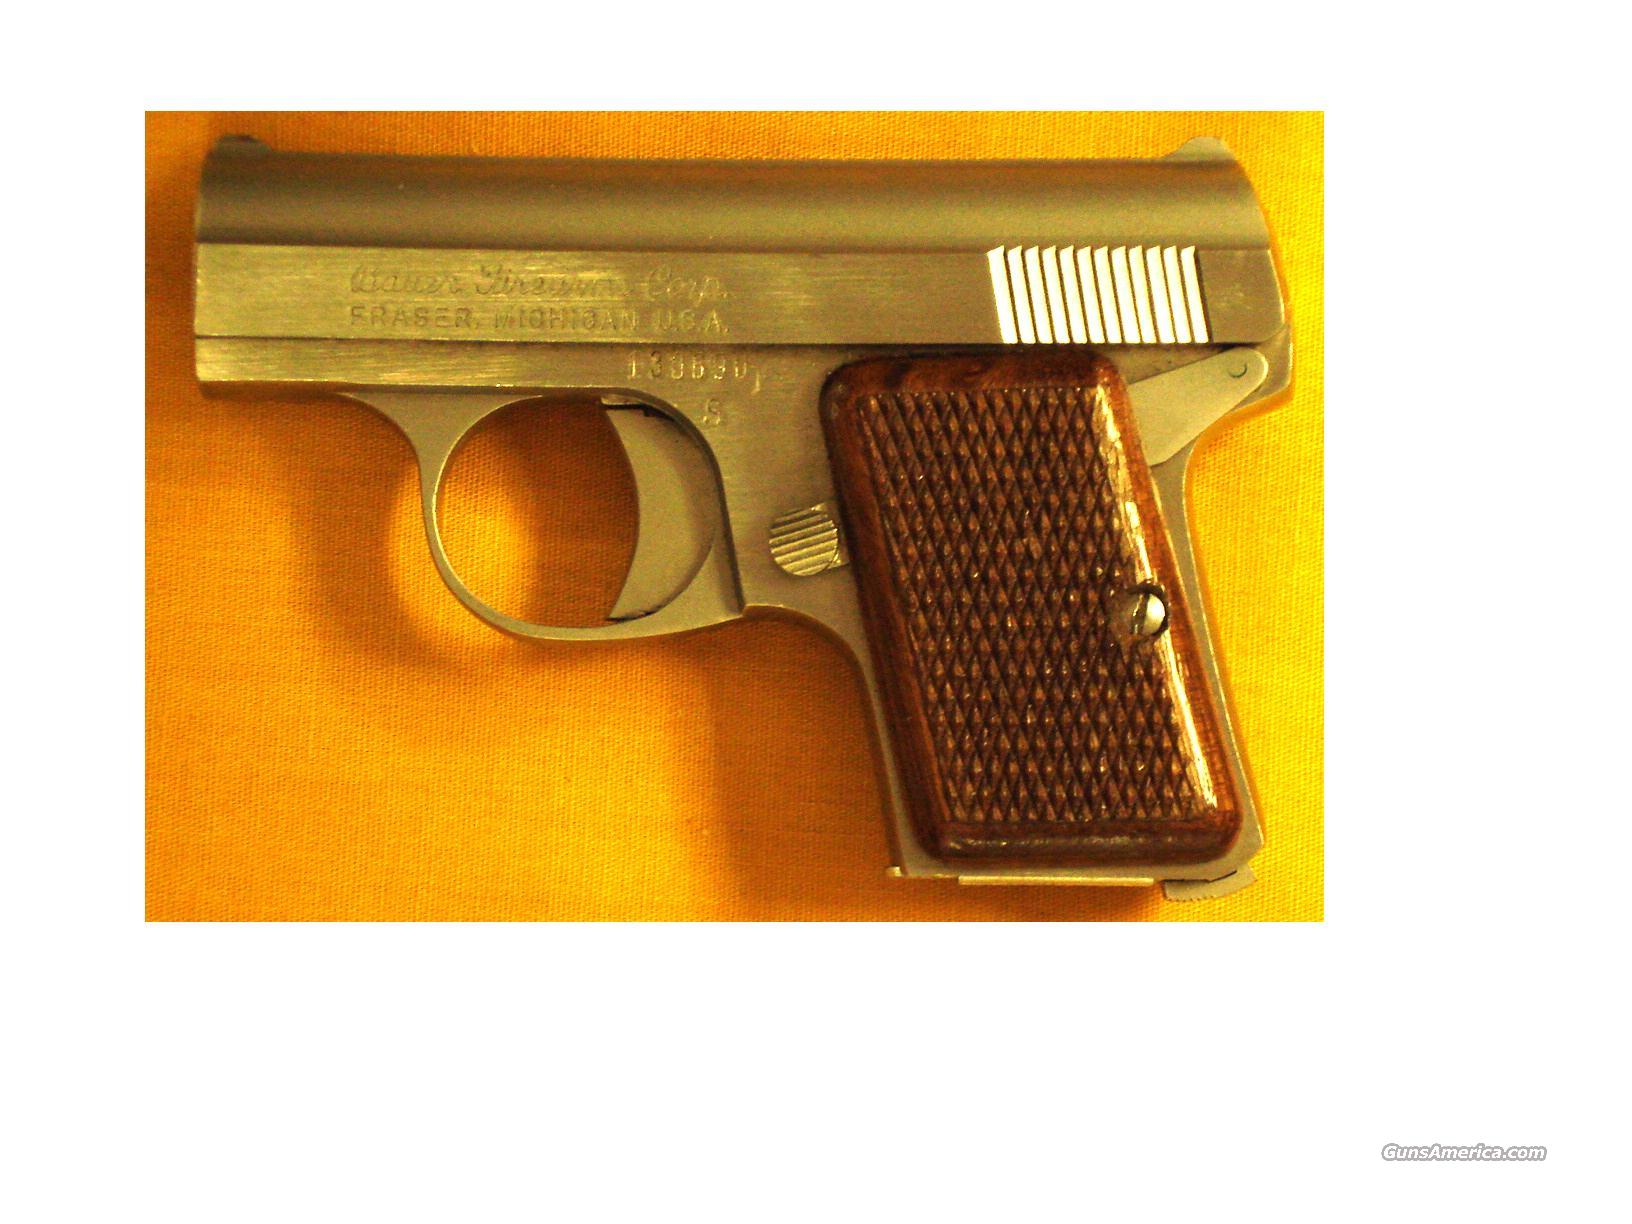 "BAUER POCKET .25ACP 2"" BARREL  Guns > Pistols > Bauer Pistols"